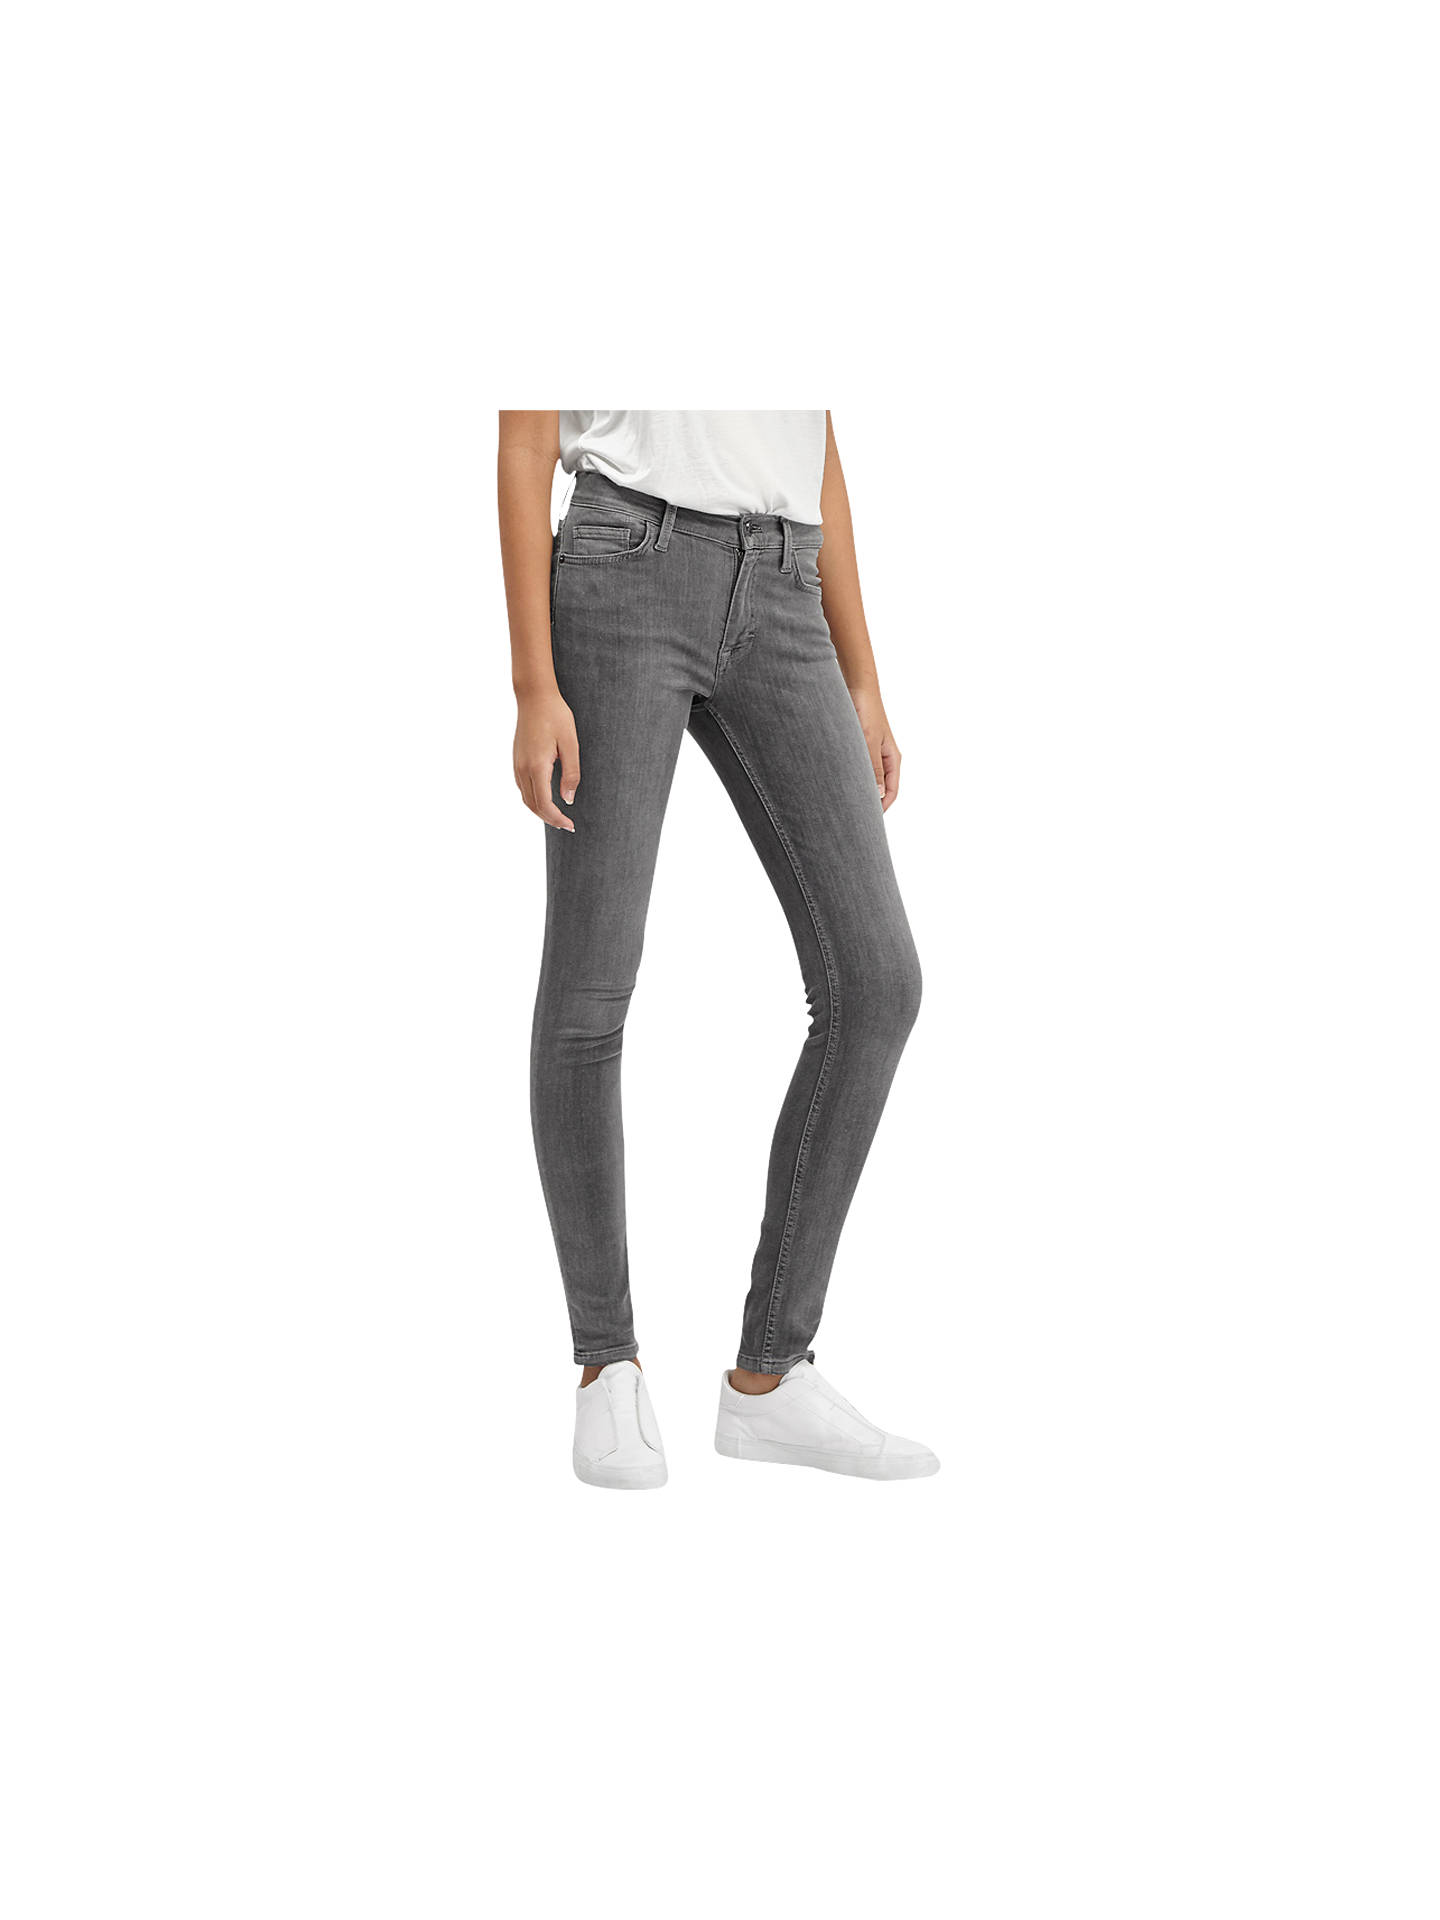 Buy French Connection Skinny Stretch Rebound Denim Jeans, Charcoal, 8 Online at johnlewis.com